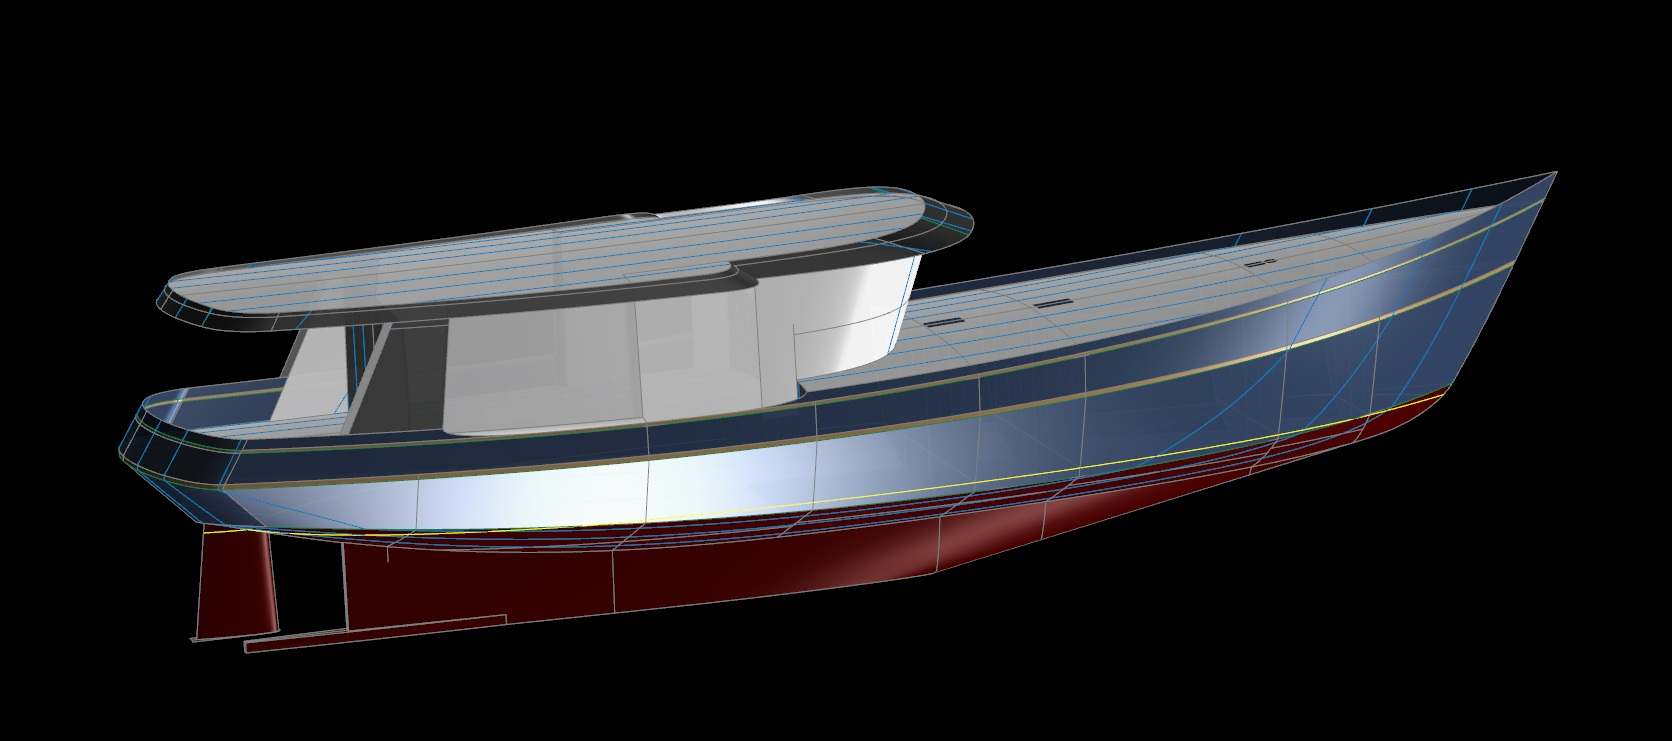 Swallows Nest 70 Trawler Yacht - Kasten Marine Design, Inc.